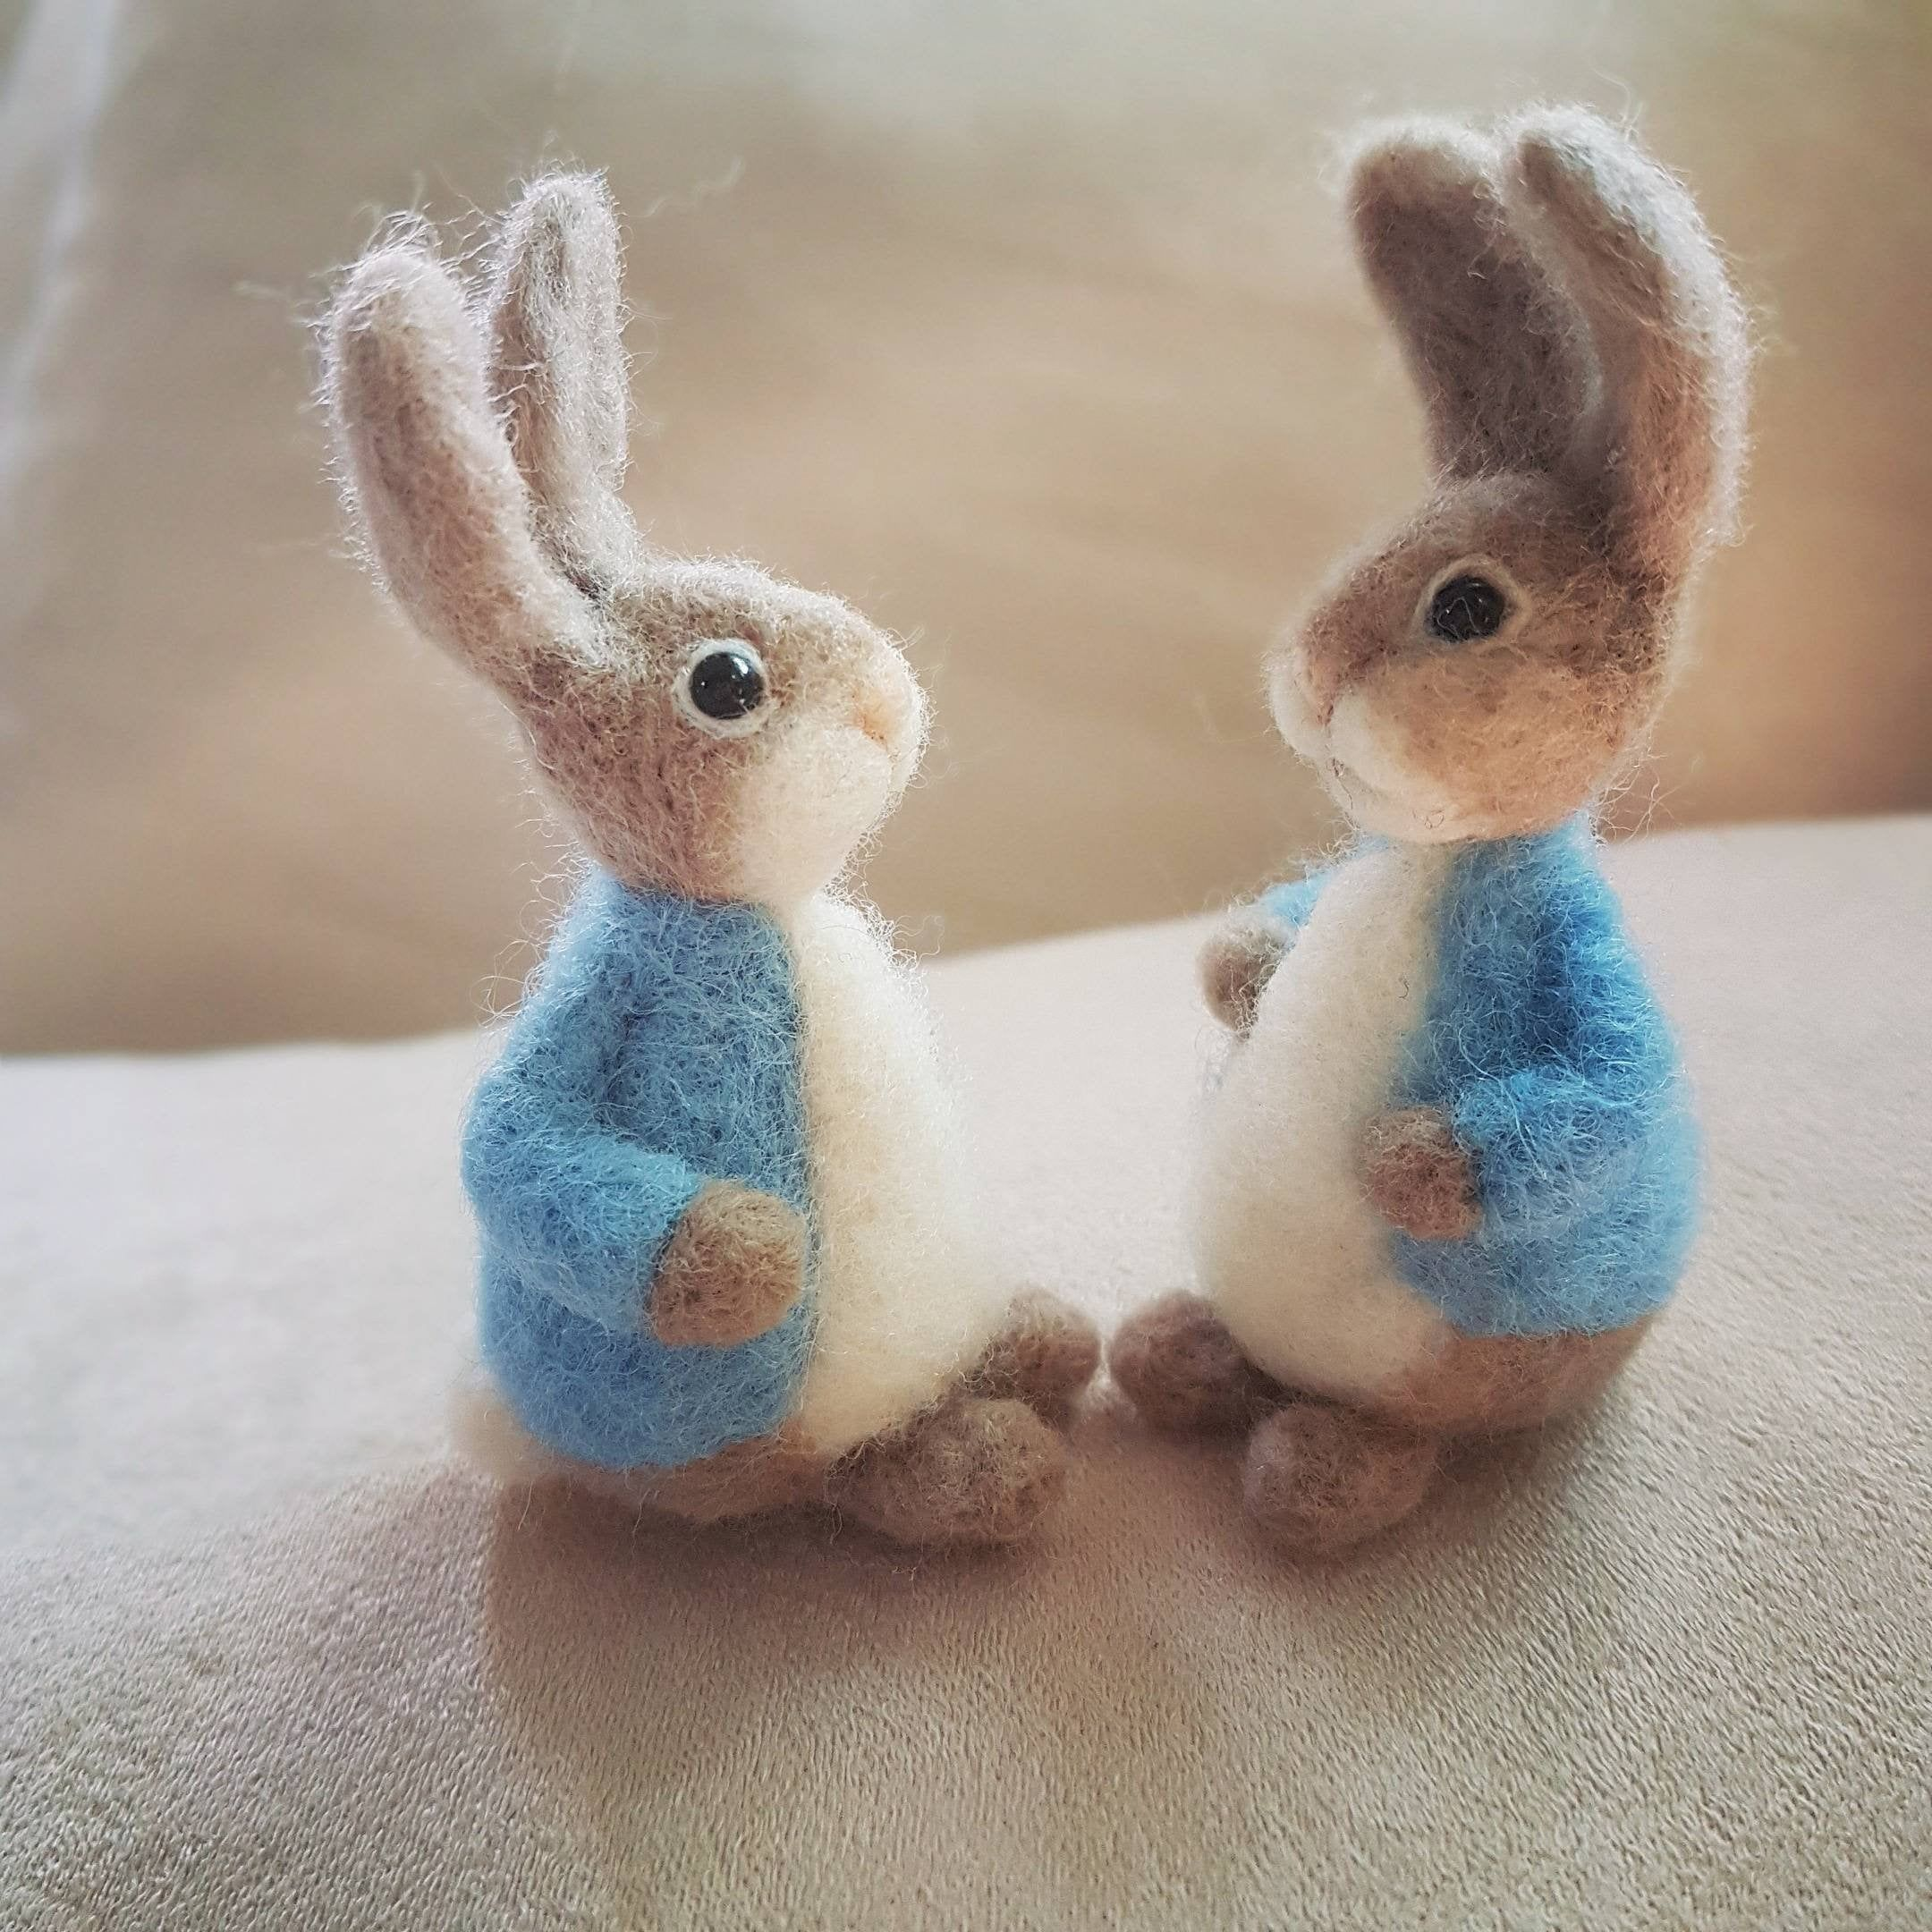 Felted bunny, Needle felted animal, Needle felted rabbit, Felted rabbit, Needle felted bunny, Rabbit toys, Rabbit doll, Rabbit lover gift